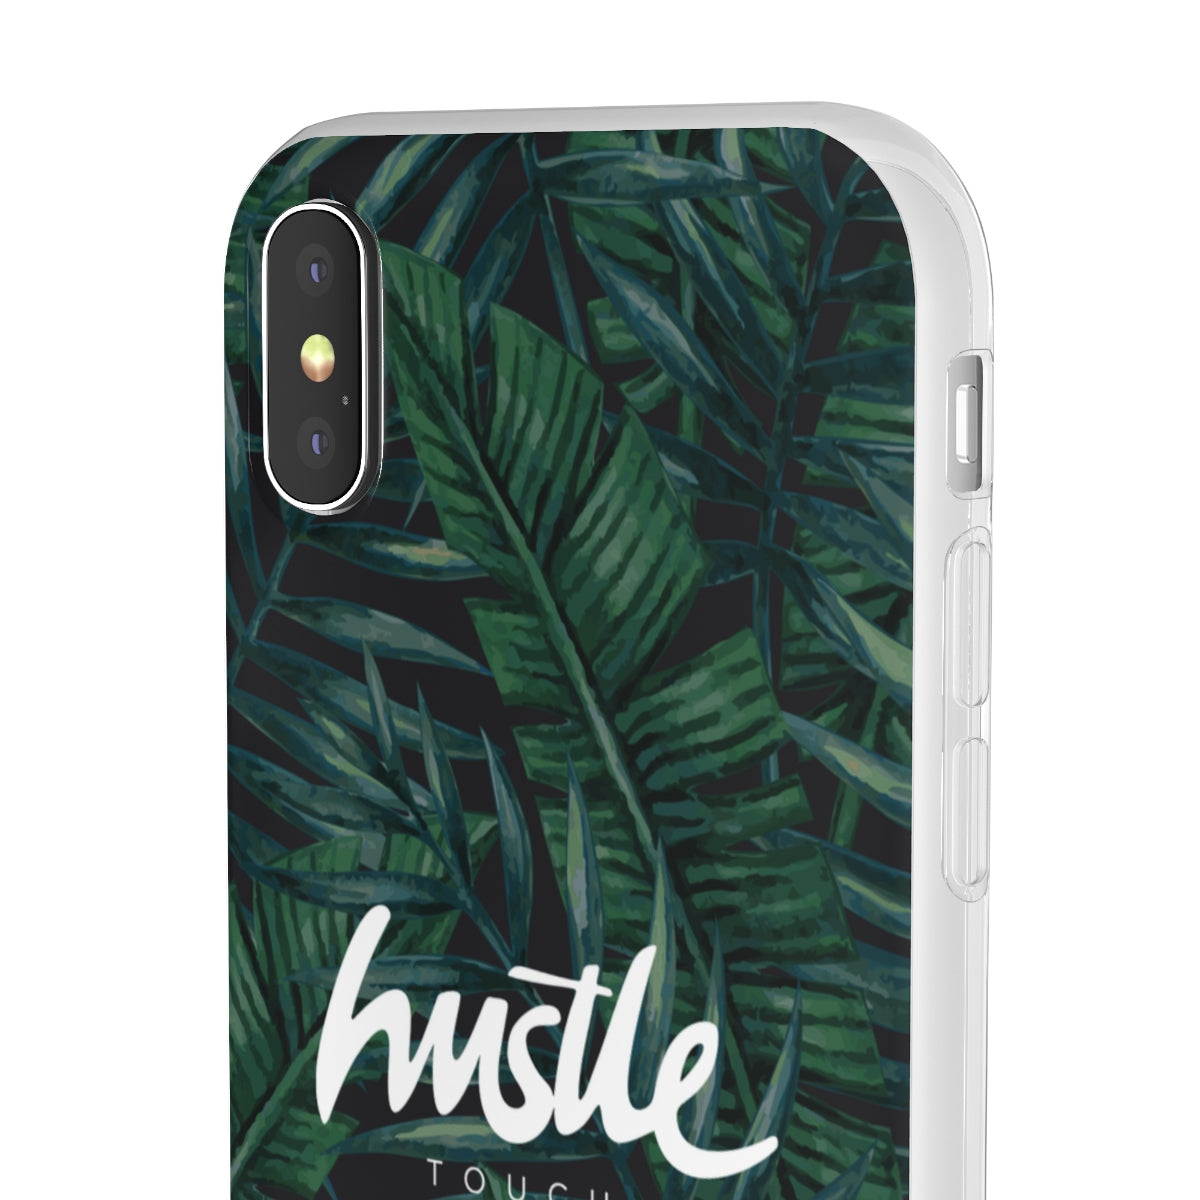 Phone case 005 - Hustle Touch